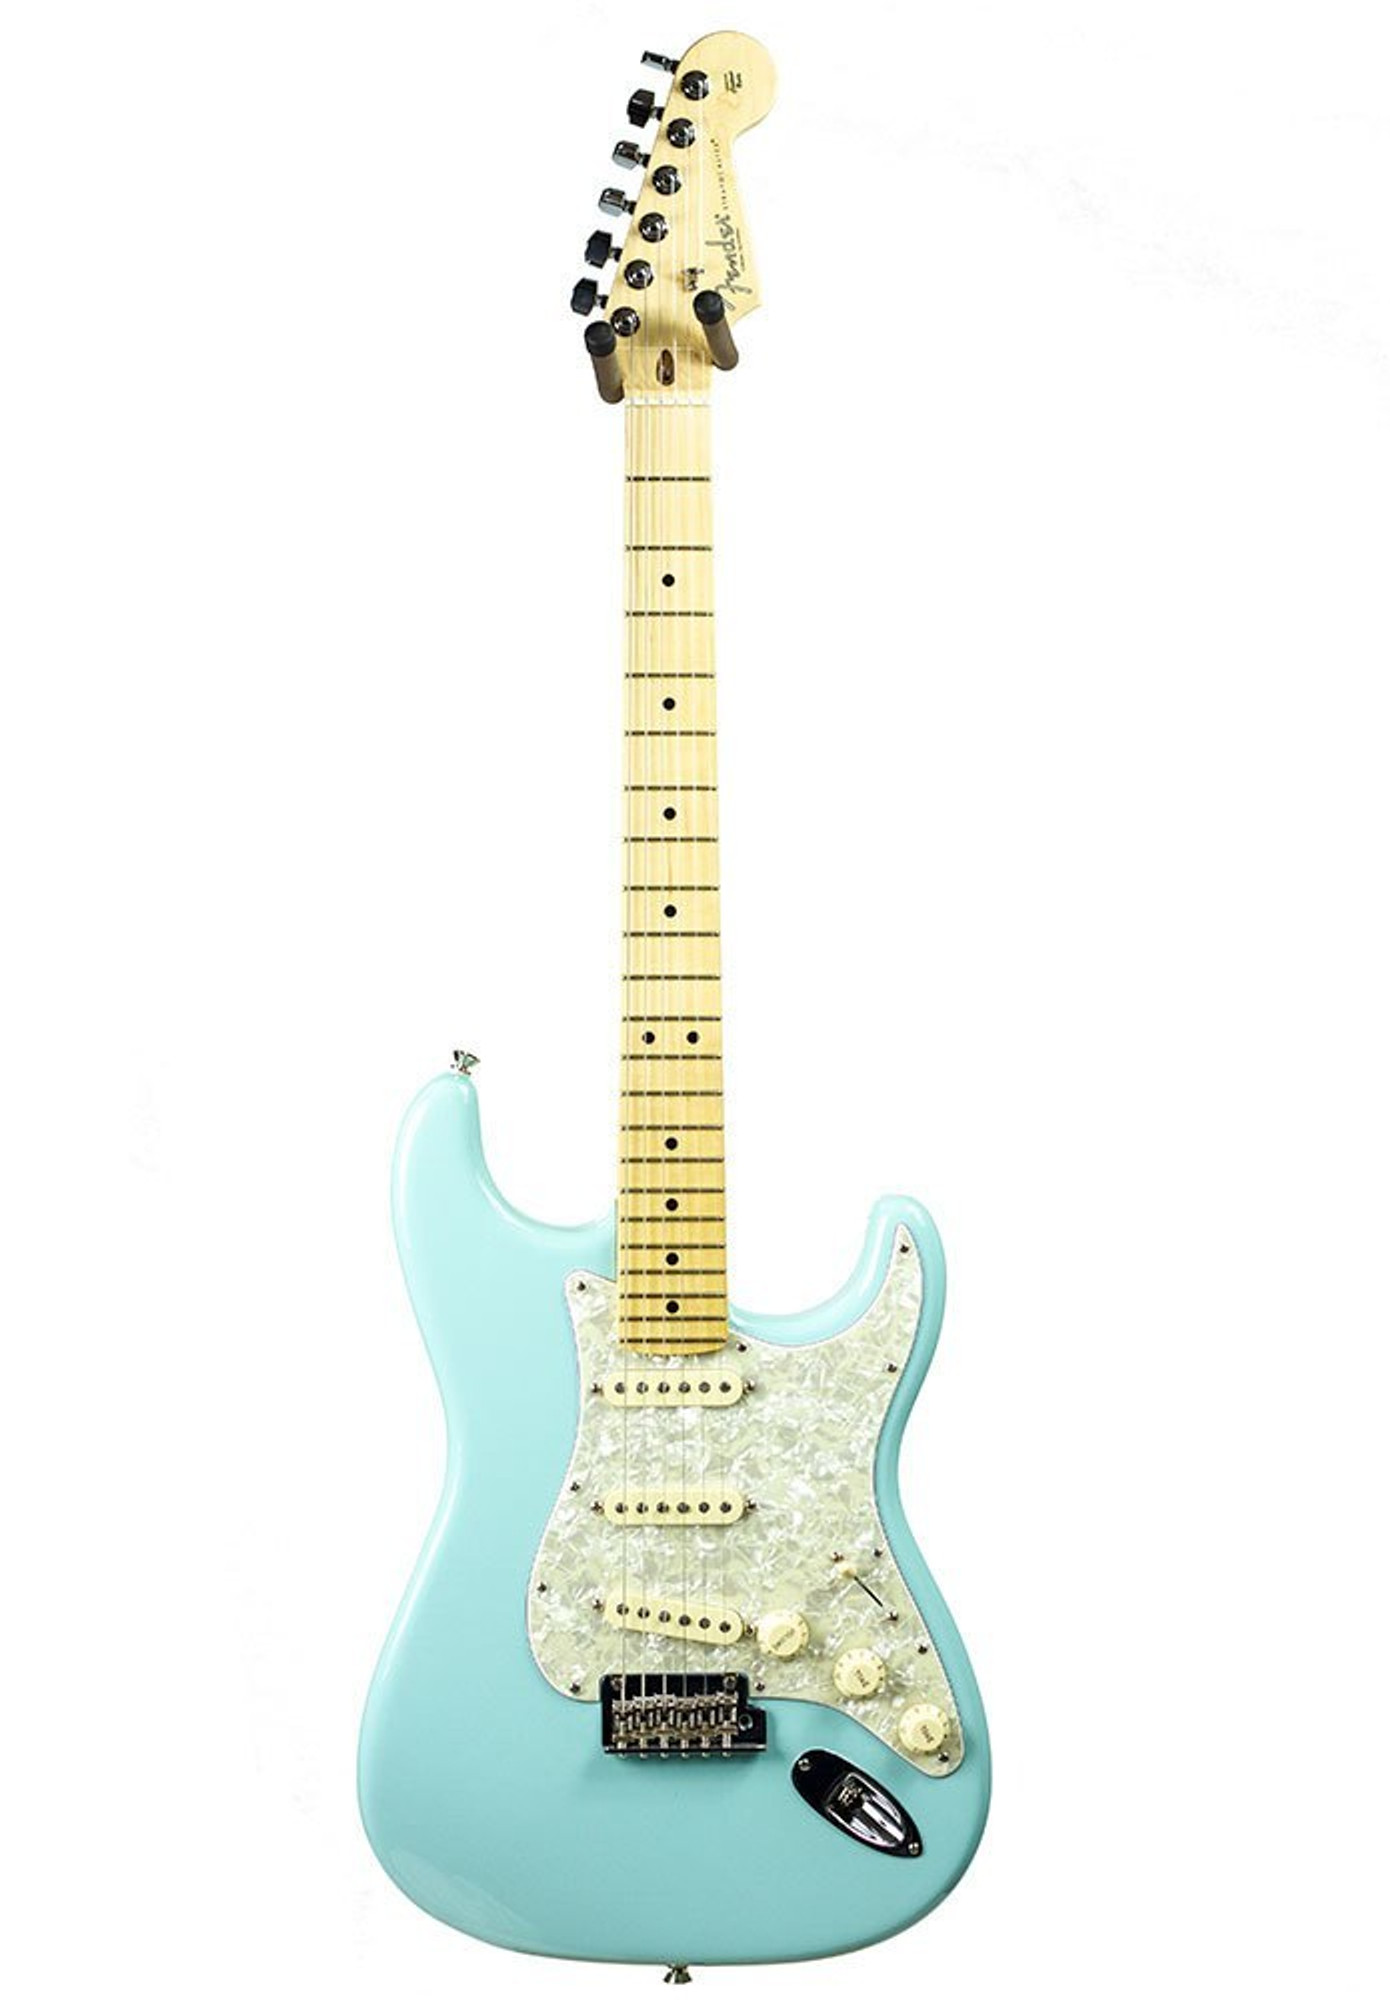 Fender Mod Shop Custom American Professional Stratocaster Daphne Blue Alamo Music Mod shop is fender's new online space where customers can create their very own custom guitar. fender mod shop custom american professional stratocaster daphne blue